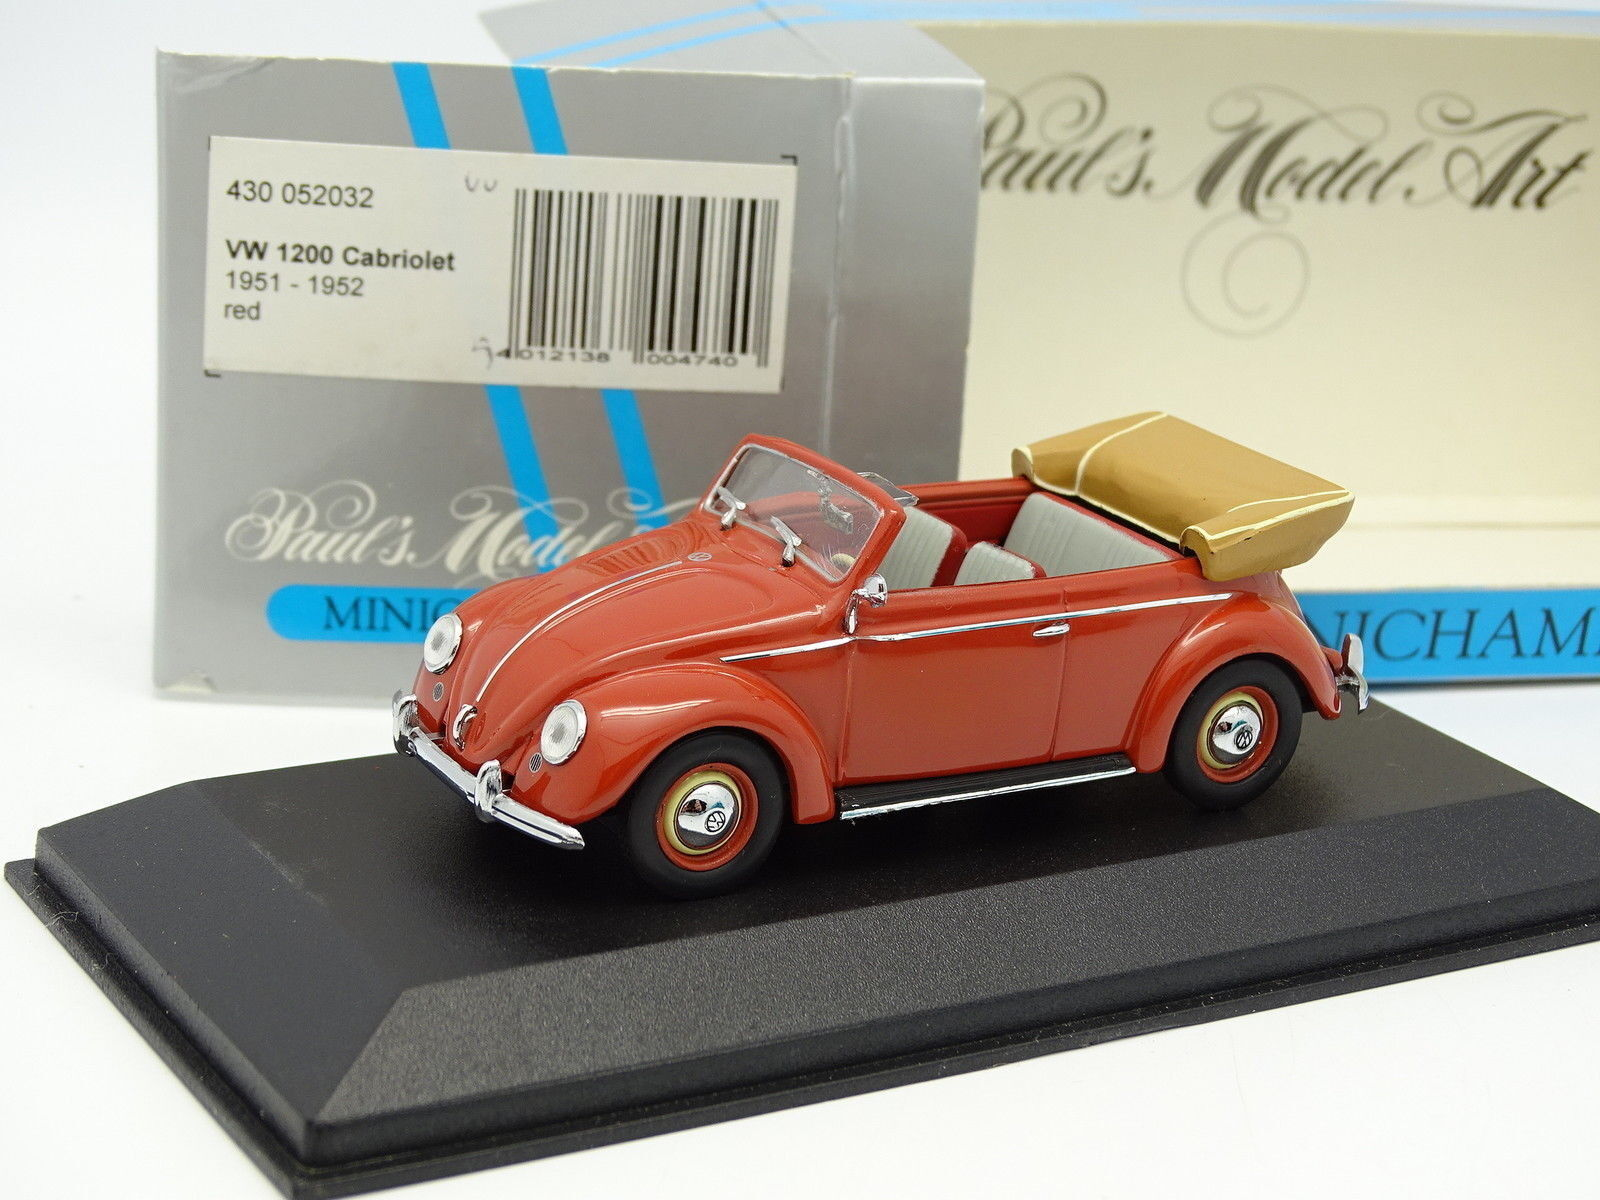 Minichamps 1 43 - vw beetle 1200 cabriolet 1951 red